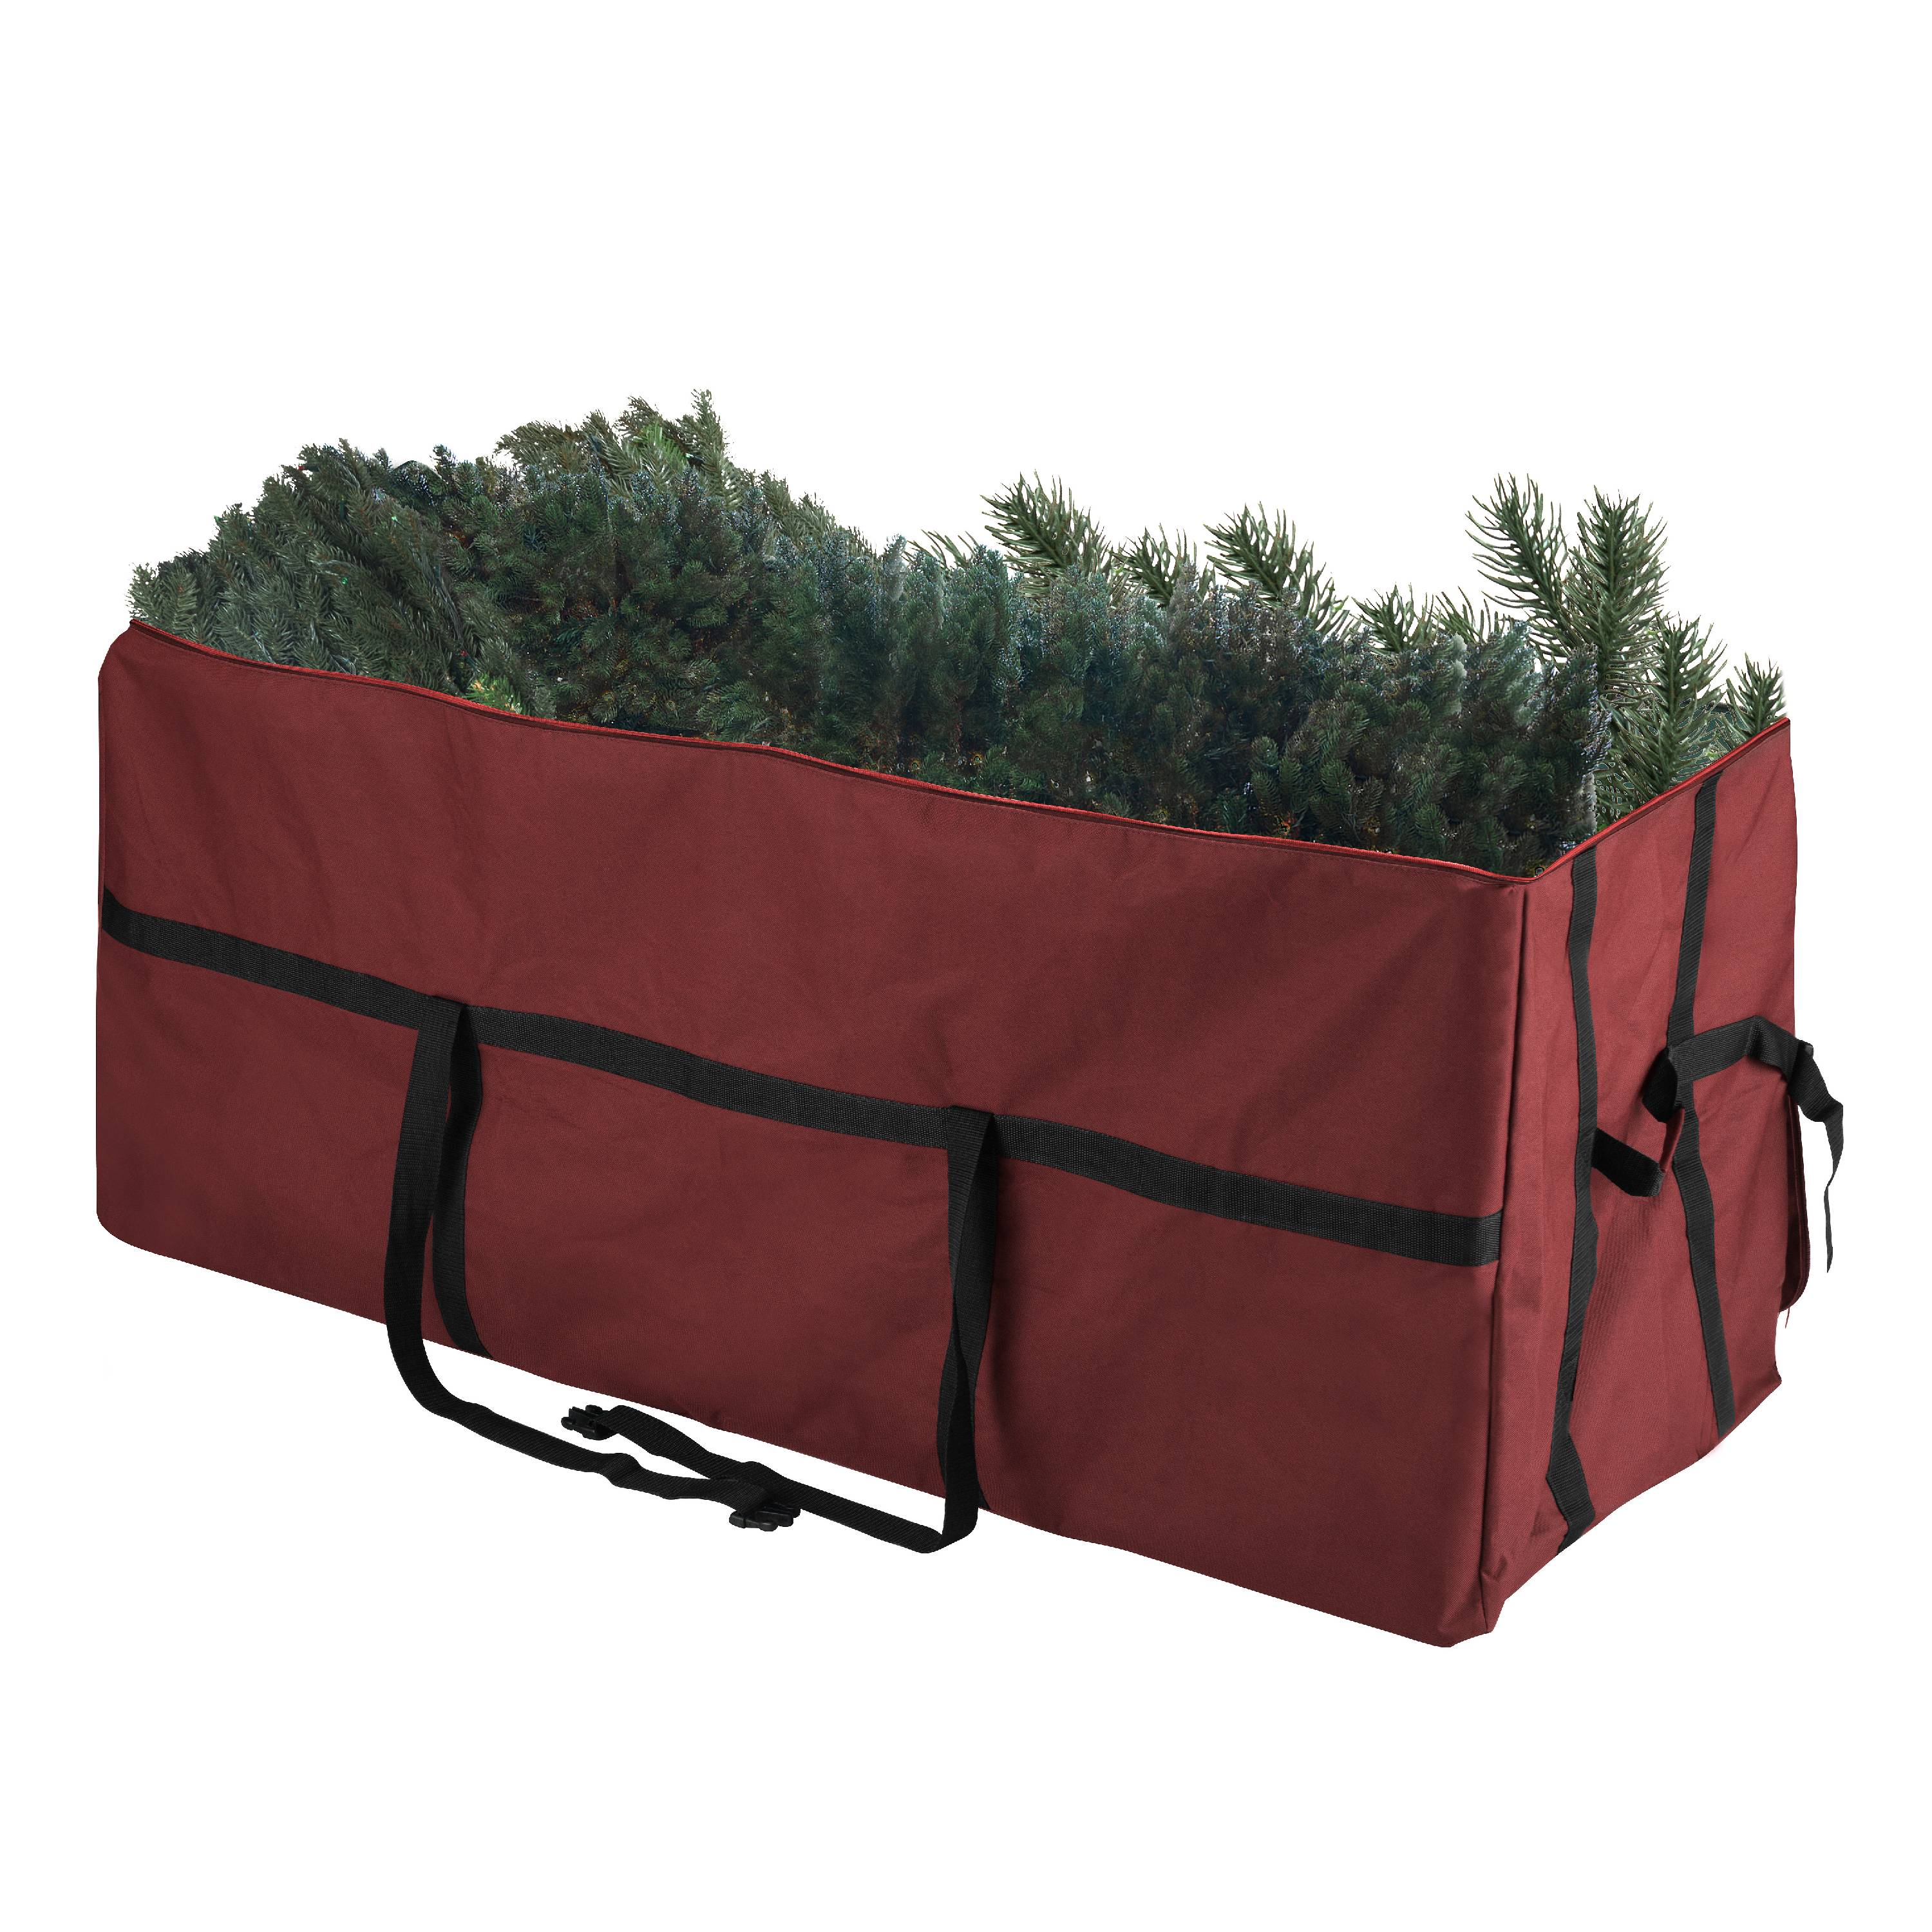 Elf Stor Heavy Duty Red Canvas Christmas Tree Storage Bag Large For 7.5 ft Tree  sc 1 st  Walmart & Elf Stor Heavy Duty Red Canvas Christmas Tree Storage Bag Large For ...